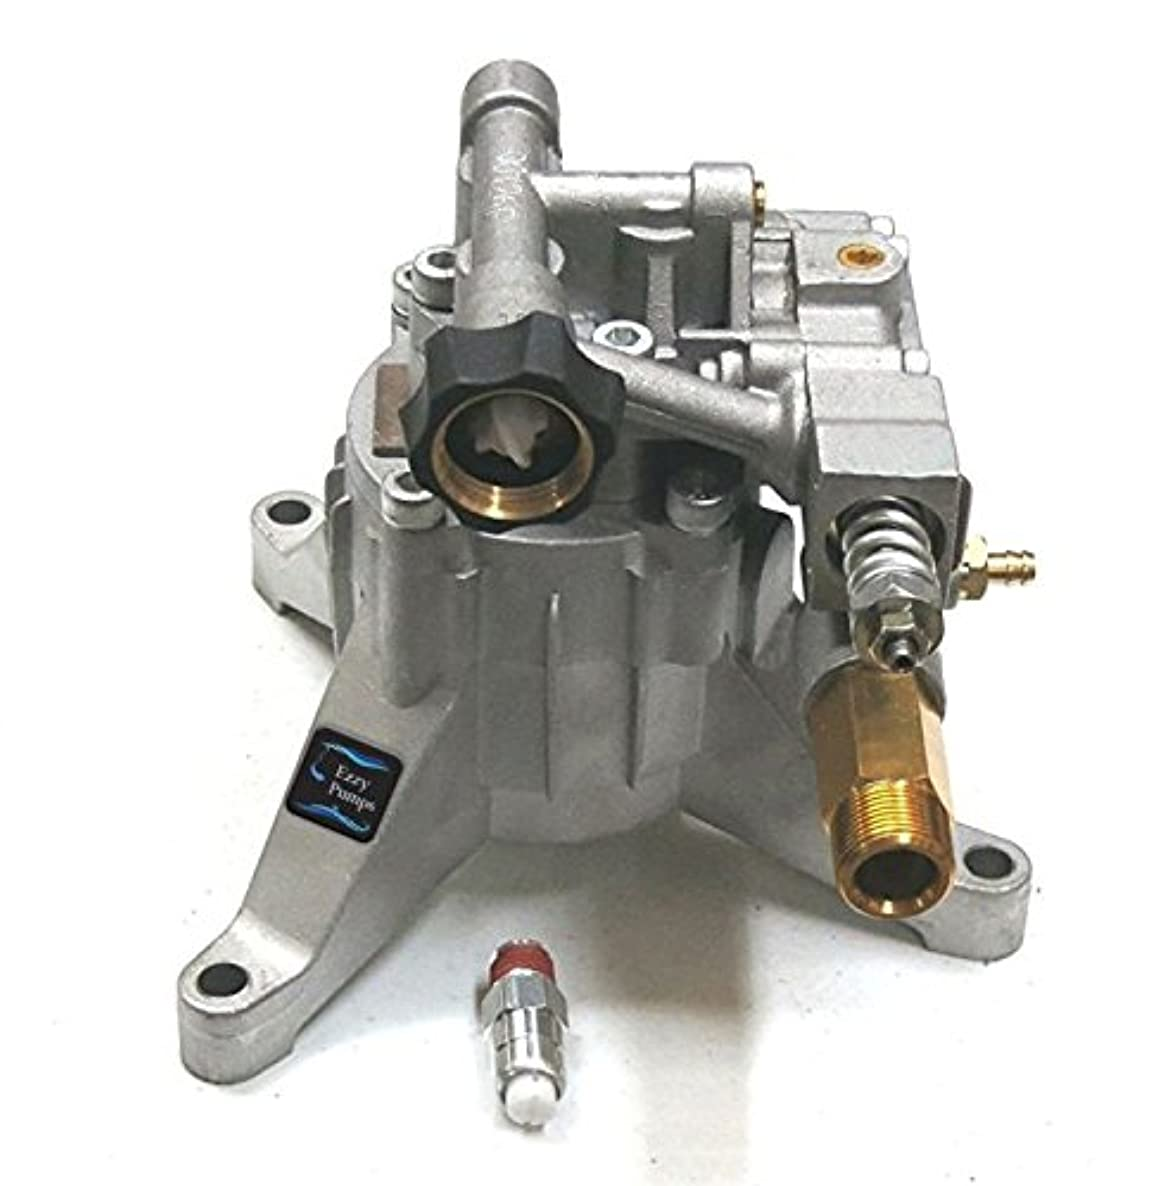 New 2700 PSI Pressure Washer Water Pump G-Clean GC80747 GC80922